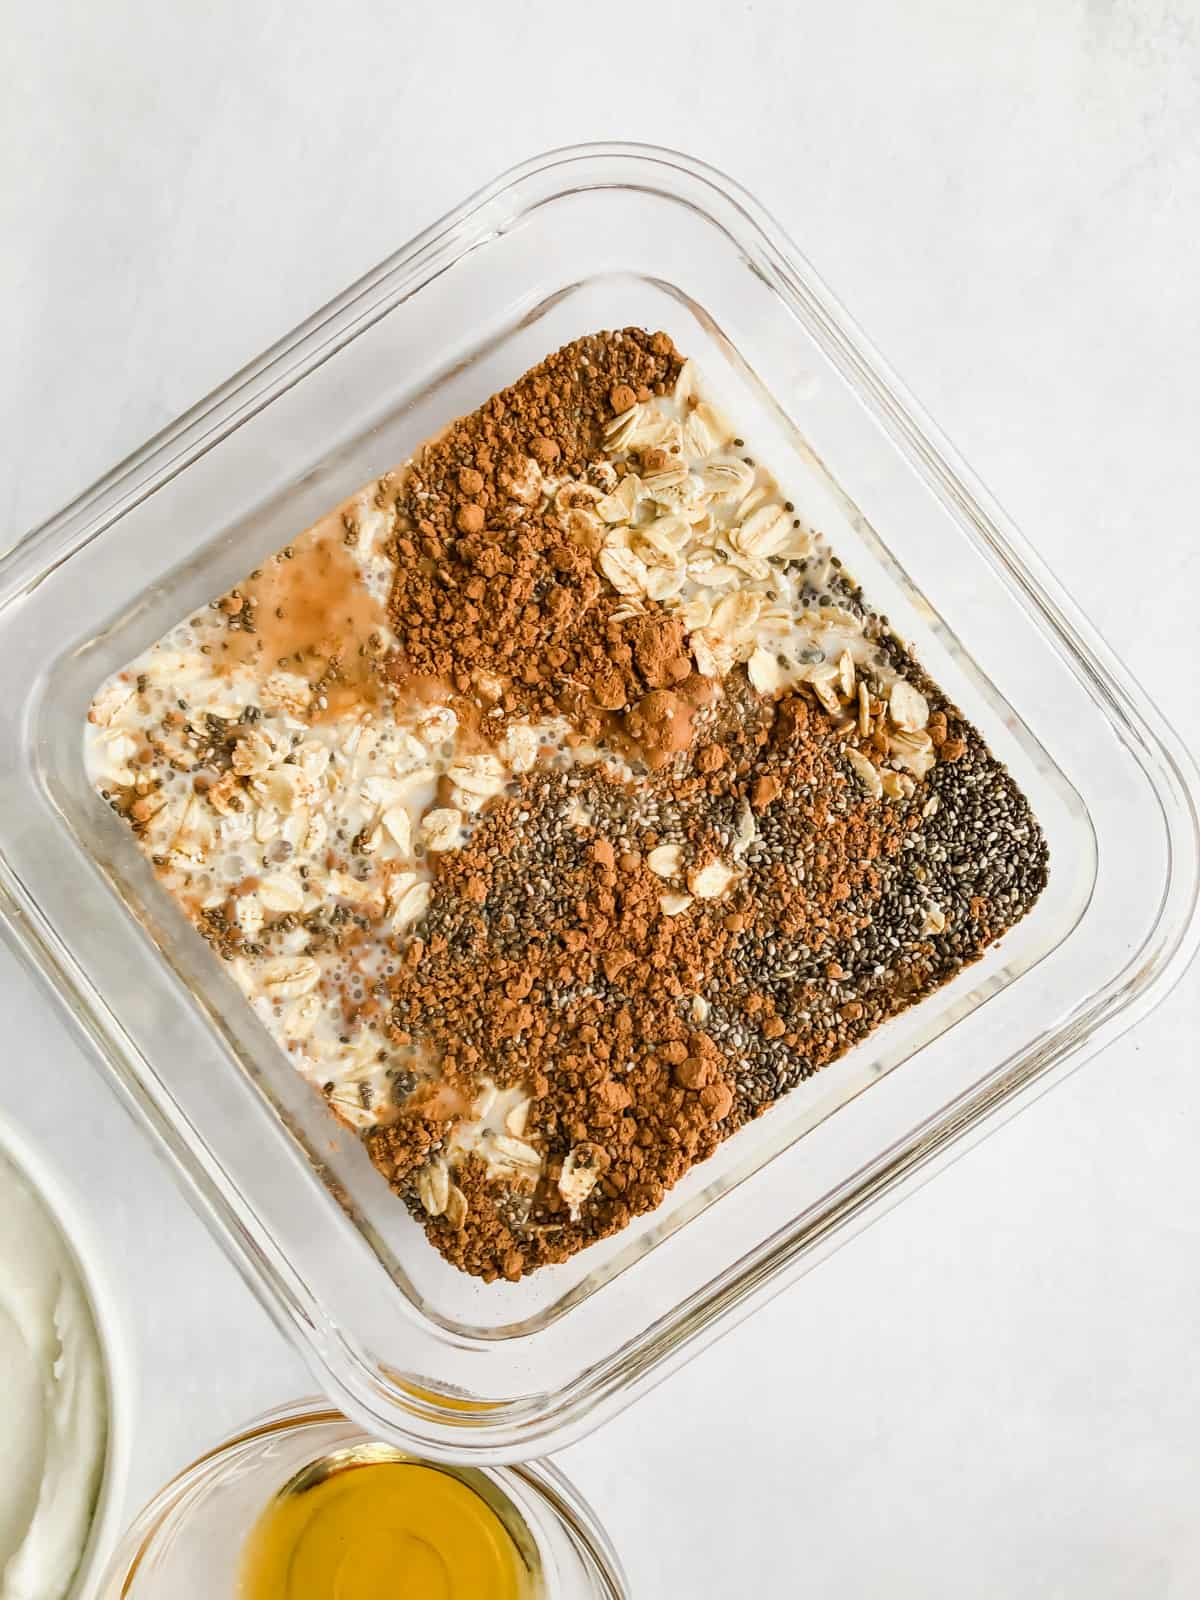 oats, cocoa, almond milk, chia seeds in a food storage container